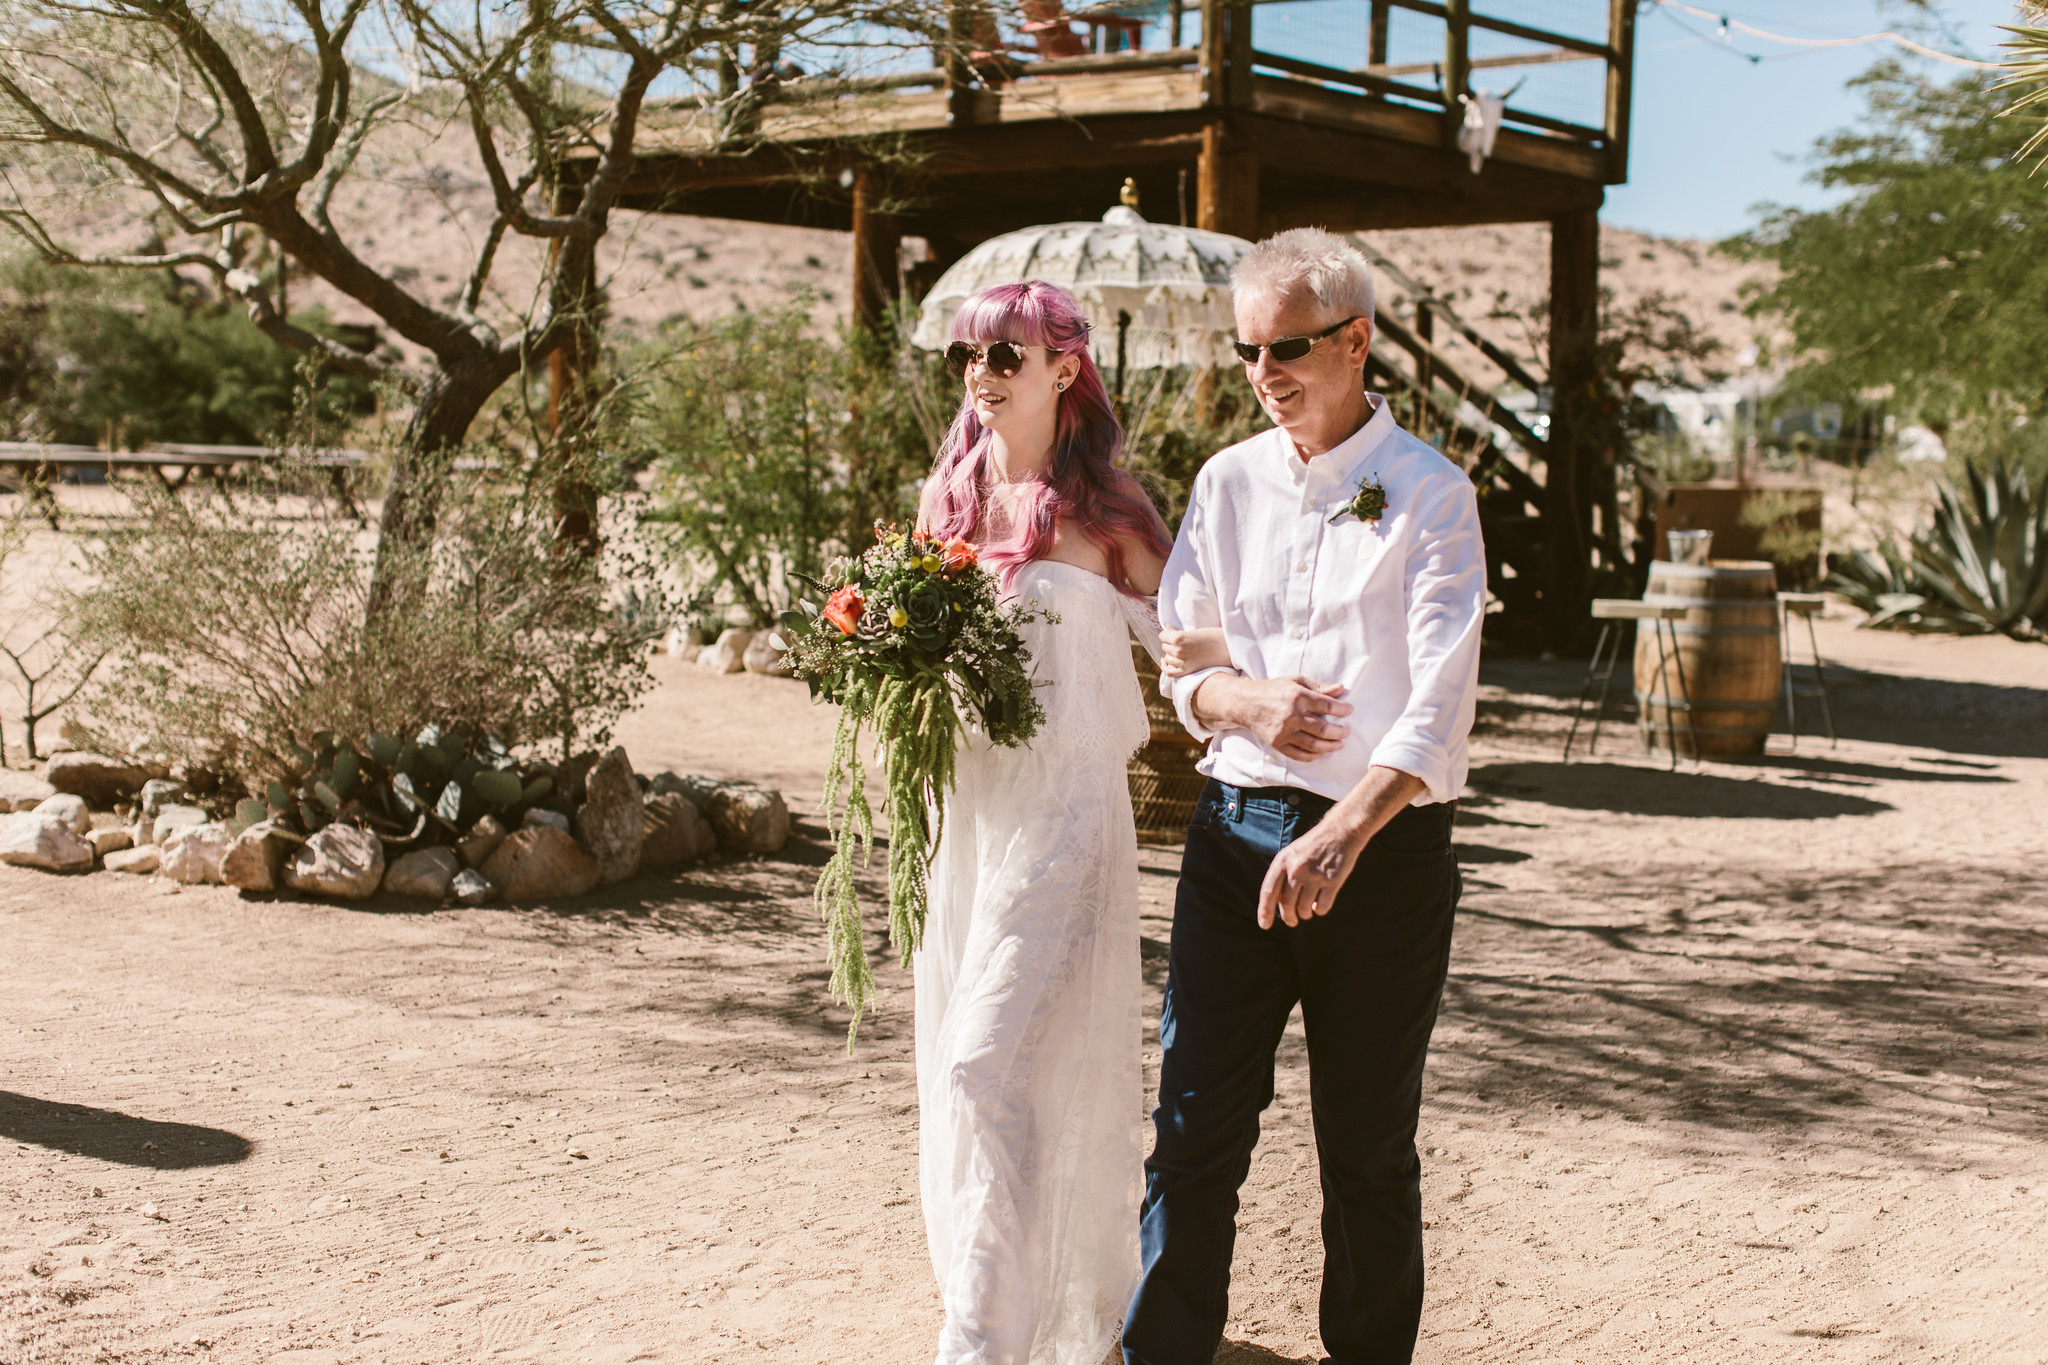 zoe-london-wedding-joshua-tree-12.jpg